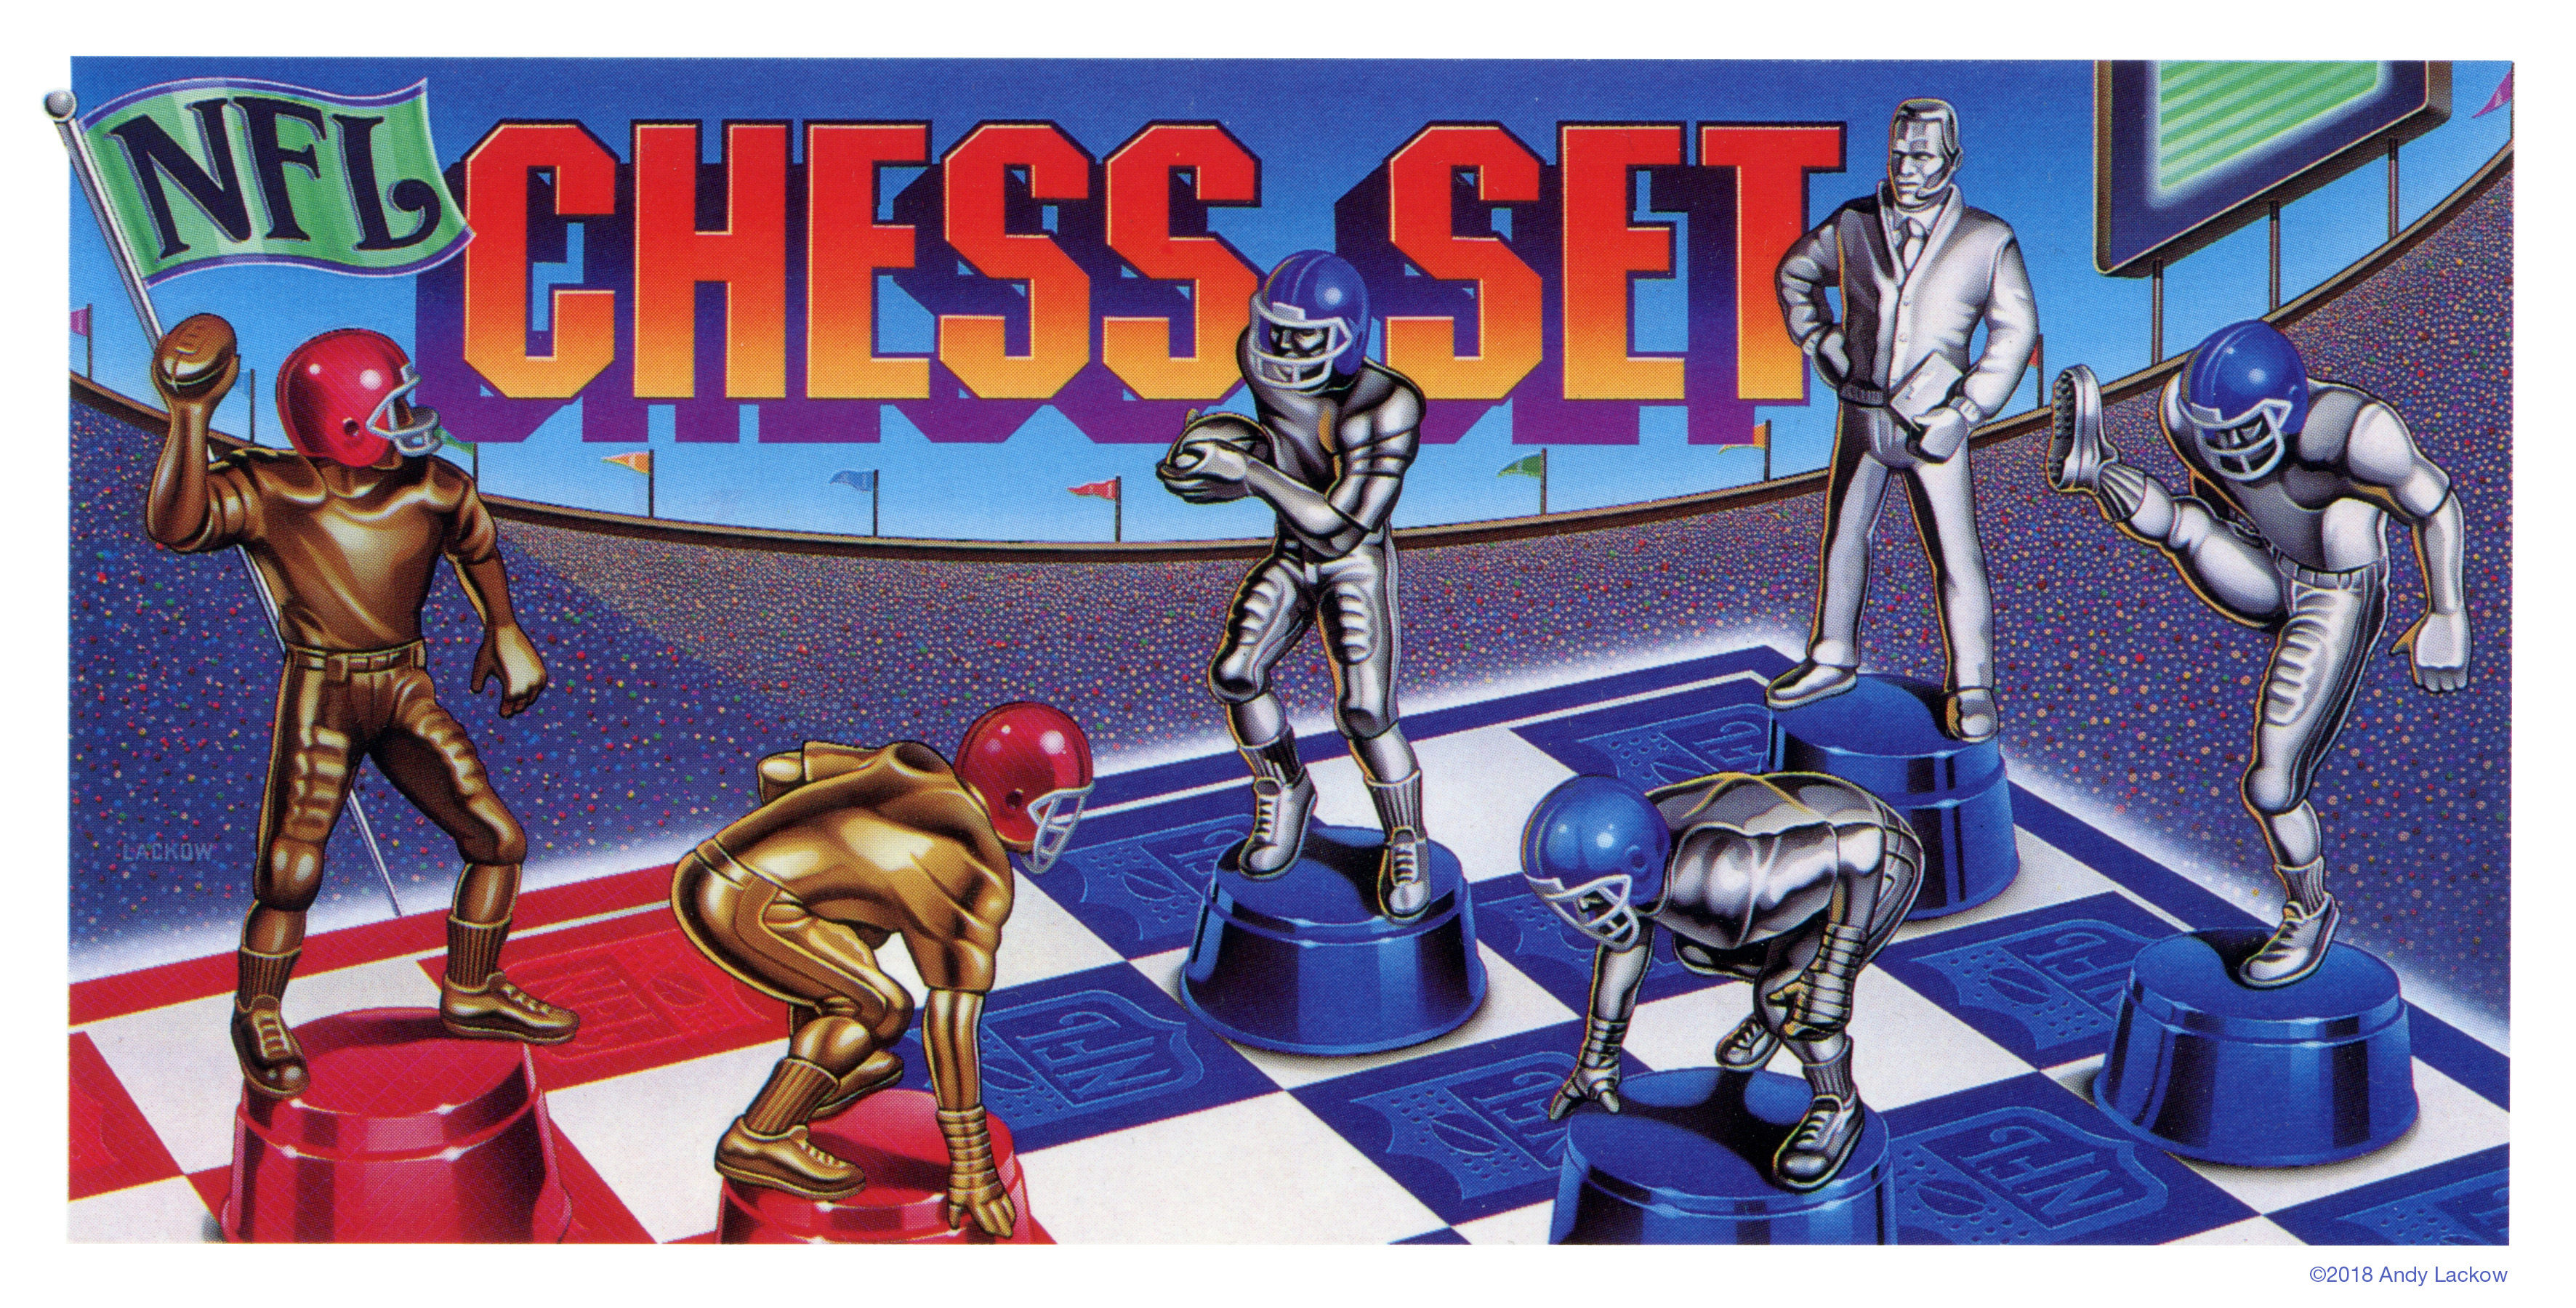 NFL Chess Game Package Artwork